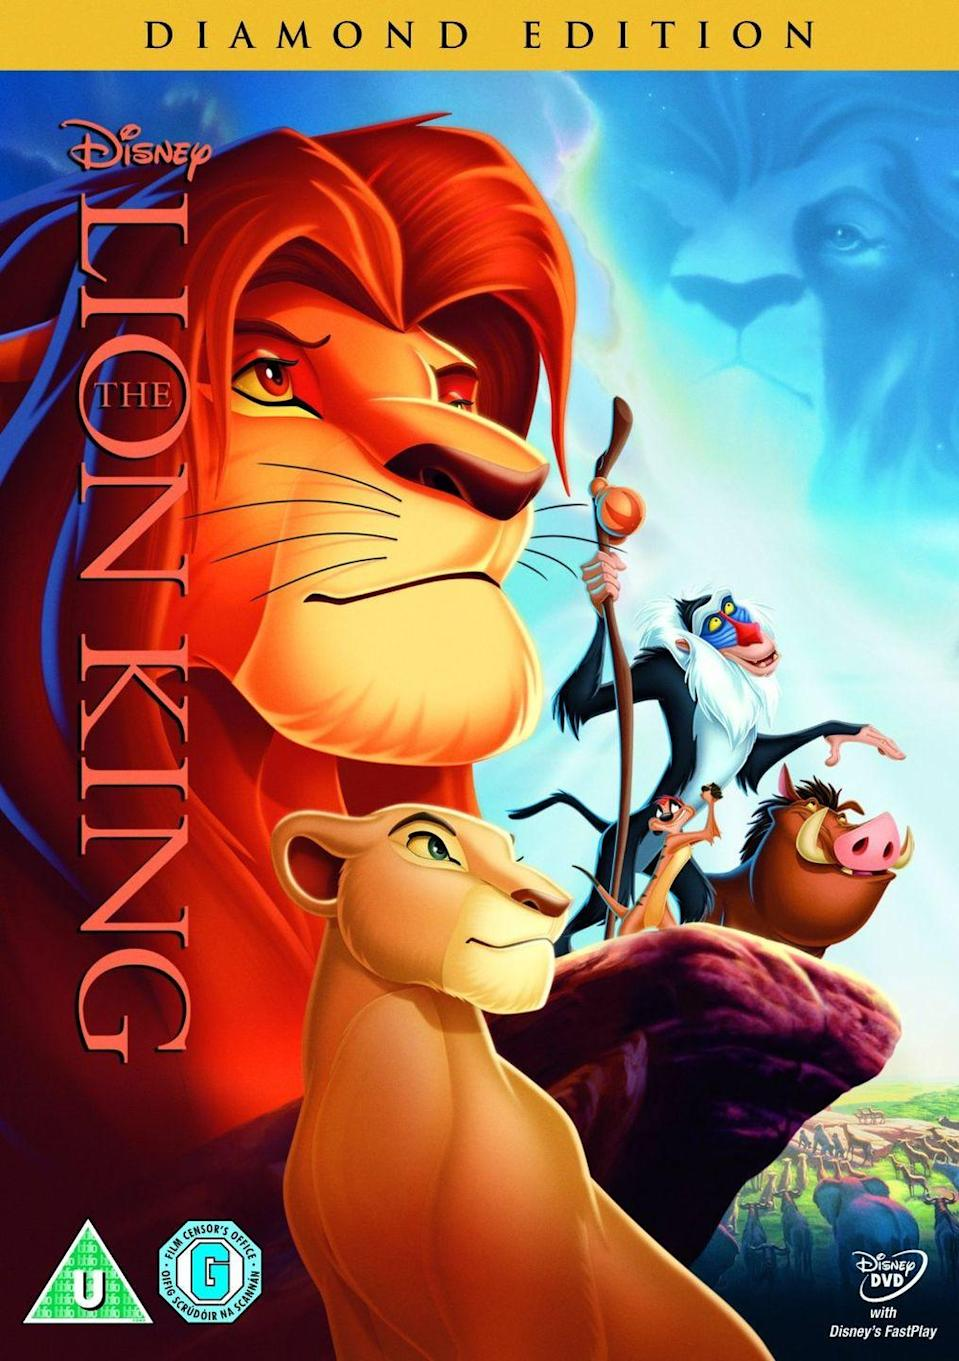 """<p>Simba's story remains the most successful traditionally animated movie in history and inspired the third-longest running Broadway musical — so of course <a href=""""https://www.seventeen.com/celebrity/movies-tv/a19062729/lion-king-live-action-2019/"""" rel=""""nofollow noopener"""" target=""""_blank"""" data-ylk=""""slk:it got the live-action treatment"""" class=""""link rapid-noclick-resp"""">it got the live-action treatment</a>. But we might be stretching the definition of 'live action' considering there are zero humans in the film so it's really more of a CGI film. After the success of Disney's other animal-centric reboot, <em>The Jungle Book</em>, <a href=""""http://www.hollywoodreporter.com/heat-vision/lion-king-live-action-movie-933335"""" rel=""""nofollow noopener"""" target=""""_blank"""" data-ylk=""""slk:this movie was fast-tracked to production"""" class=""""link rapid-noclick-resp"""">this movie was fast-tracked to production</a> with the same director, Jon Favreau. </p><p><a class=""""link rapid-noclick-resp"""" href=""""https://www.amazon.com/dp/B073YJ7T5Y?tag=syn-yahoo-20&ascsubtag=%5Bartid%7C10065.g.2936%5Bsrc%7Cyahoo-us"""" rel=""""nofollow noopener"""" target=""""_blank"""" data-ylk=""""slk:Watch the Original"""">Watch the Original</a></p>"""